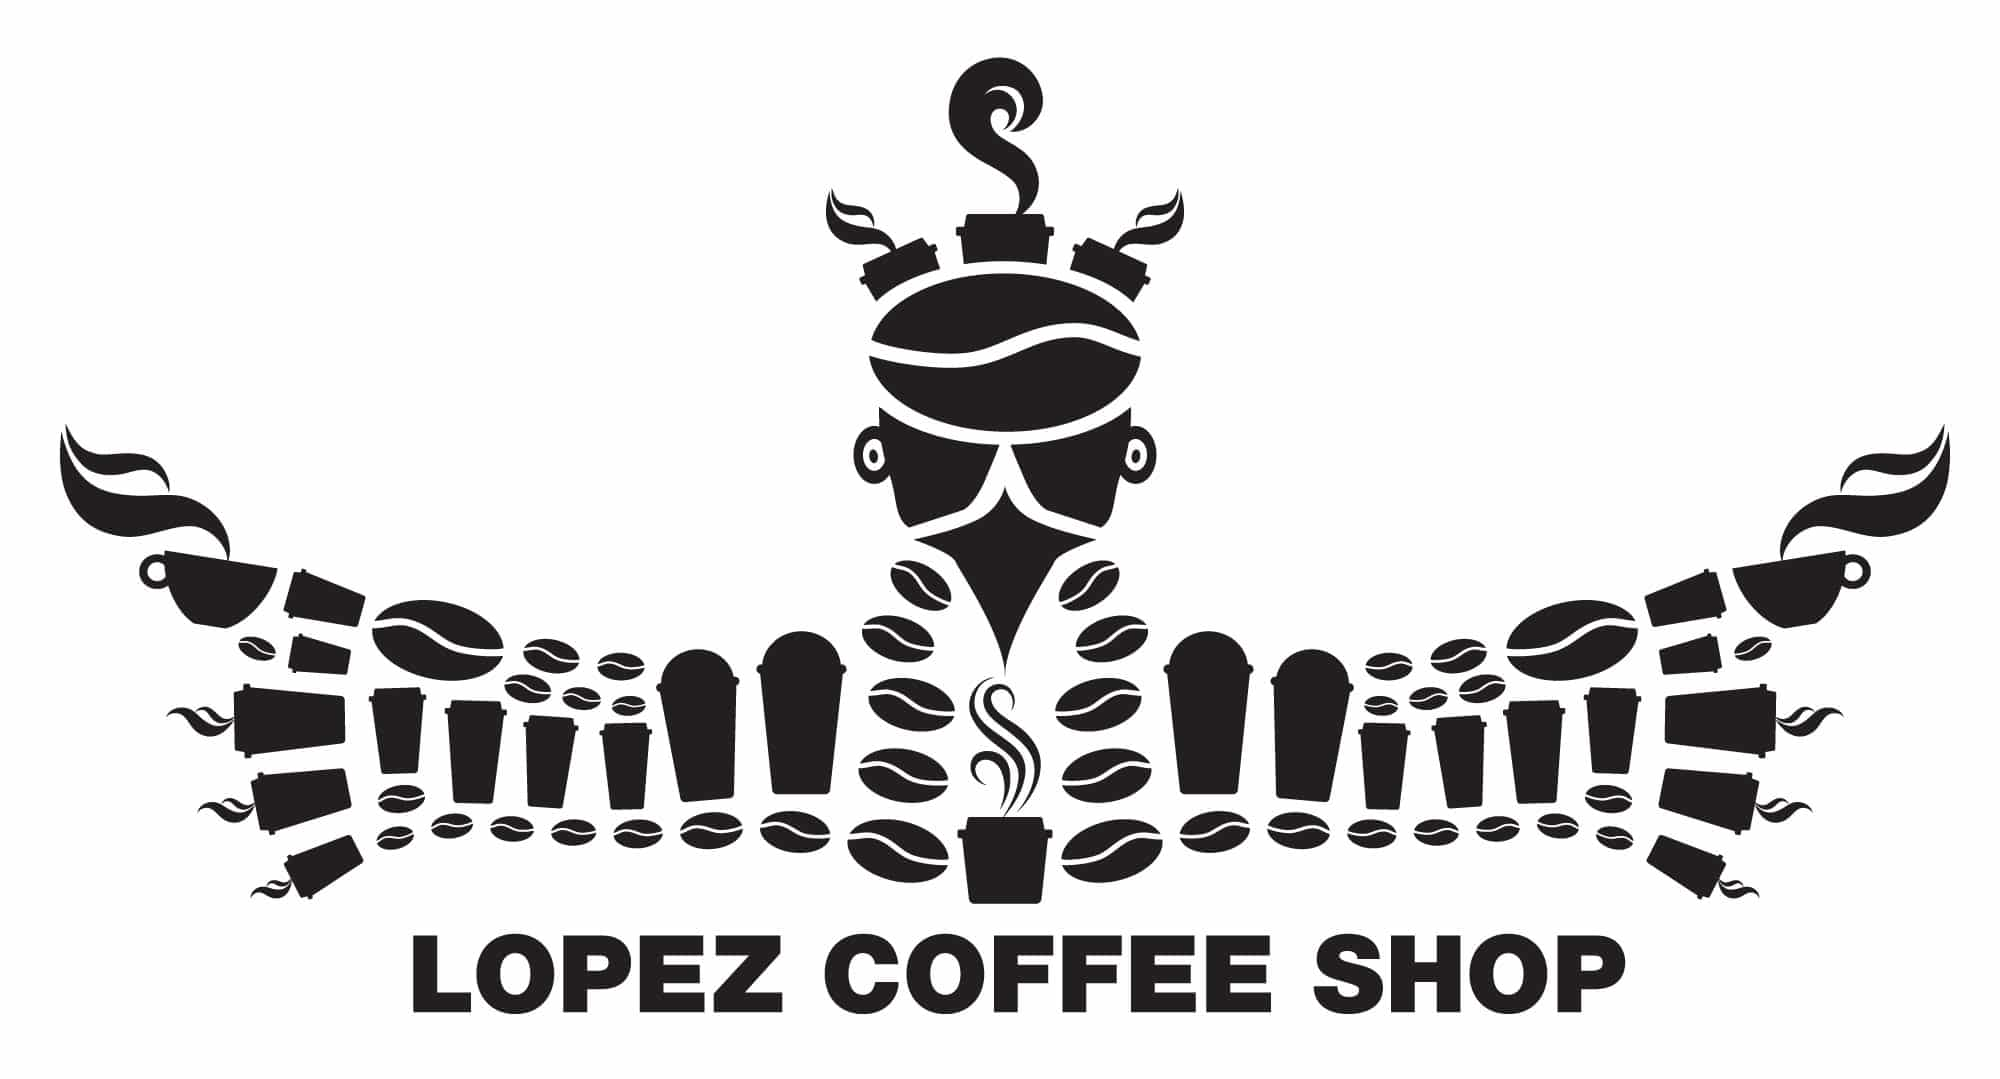 Giant is Lopez Coffee Shop Logo